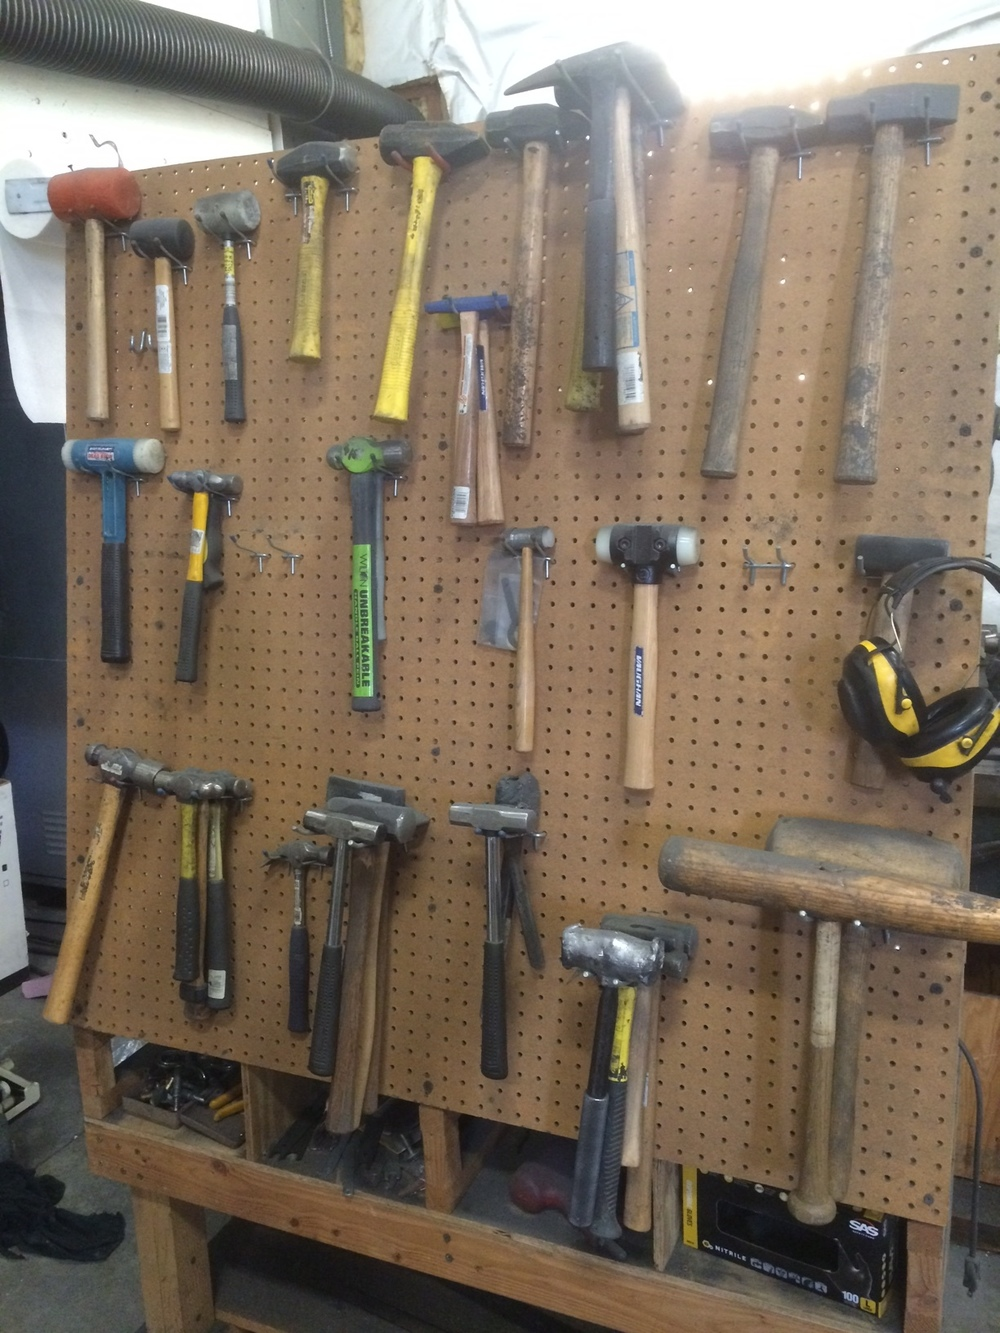 Yes, I do like hammers.